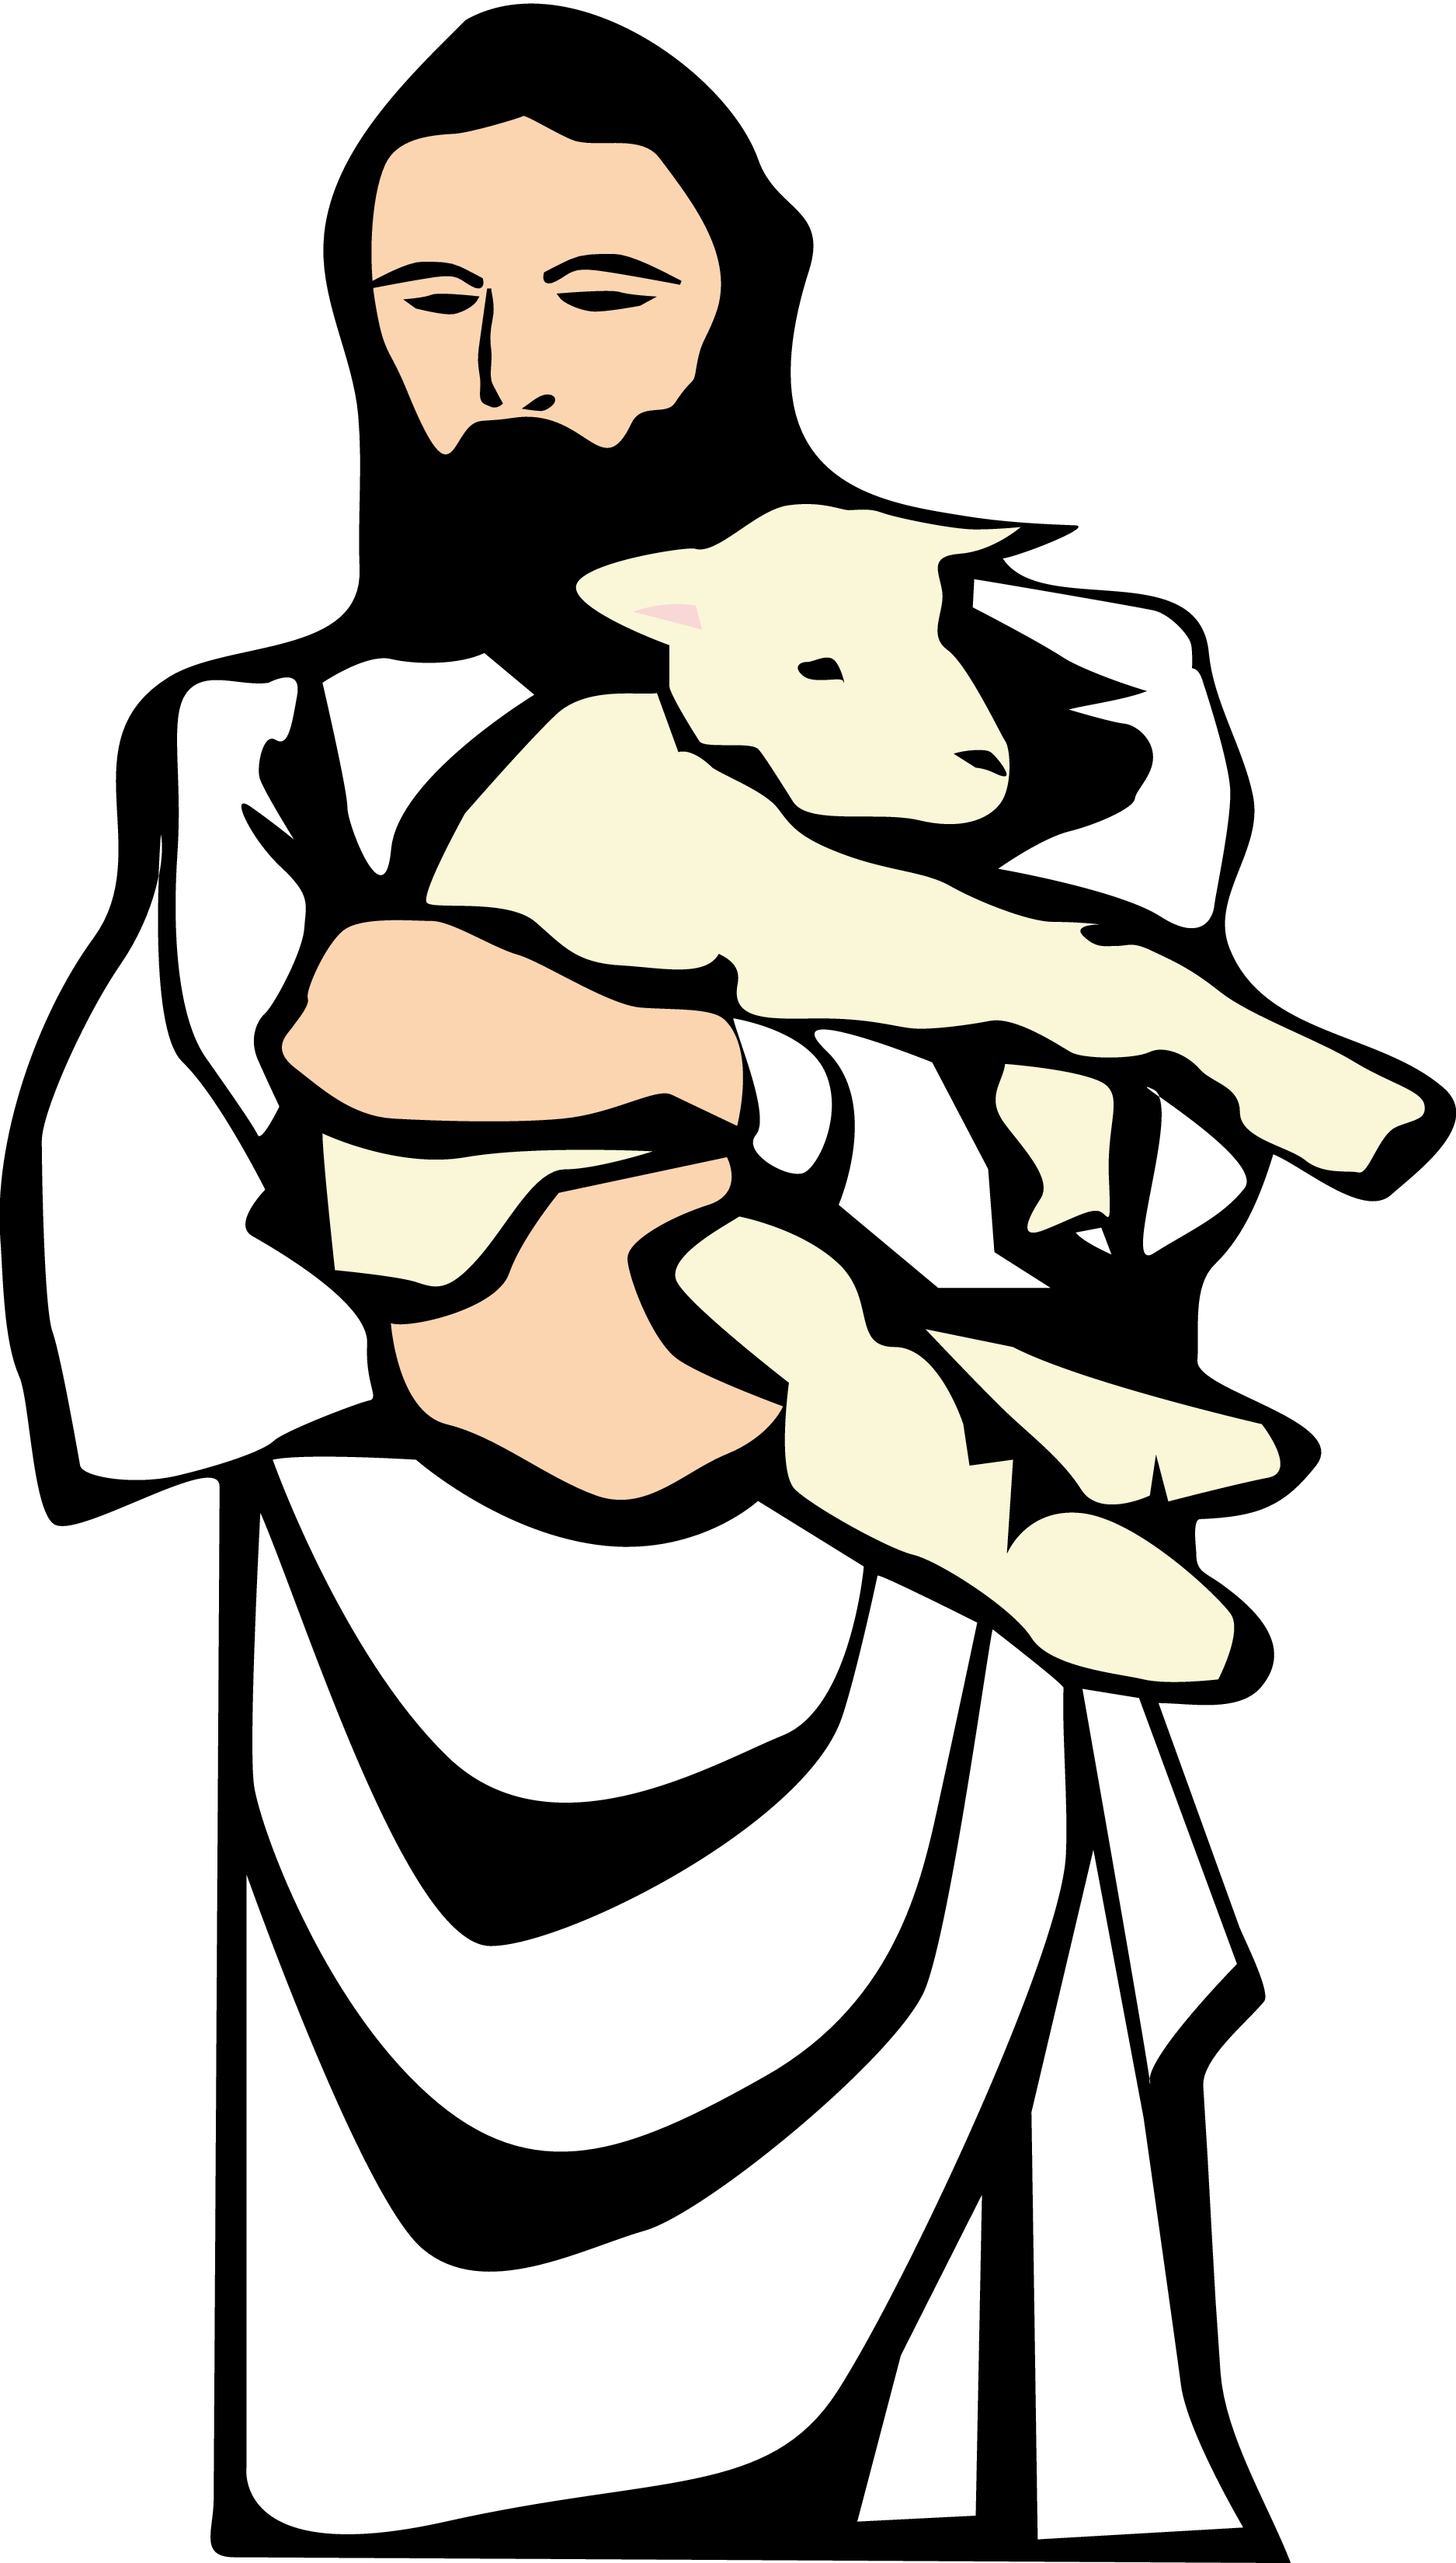 free christian clip art prodigal son - photo #5